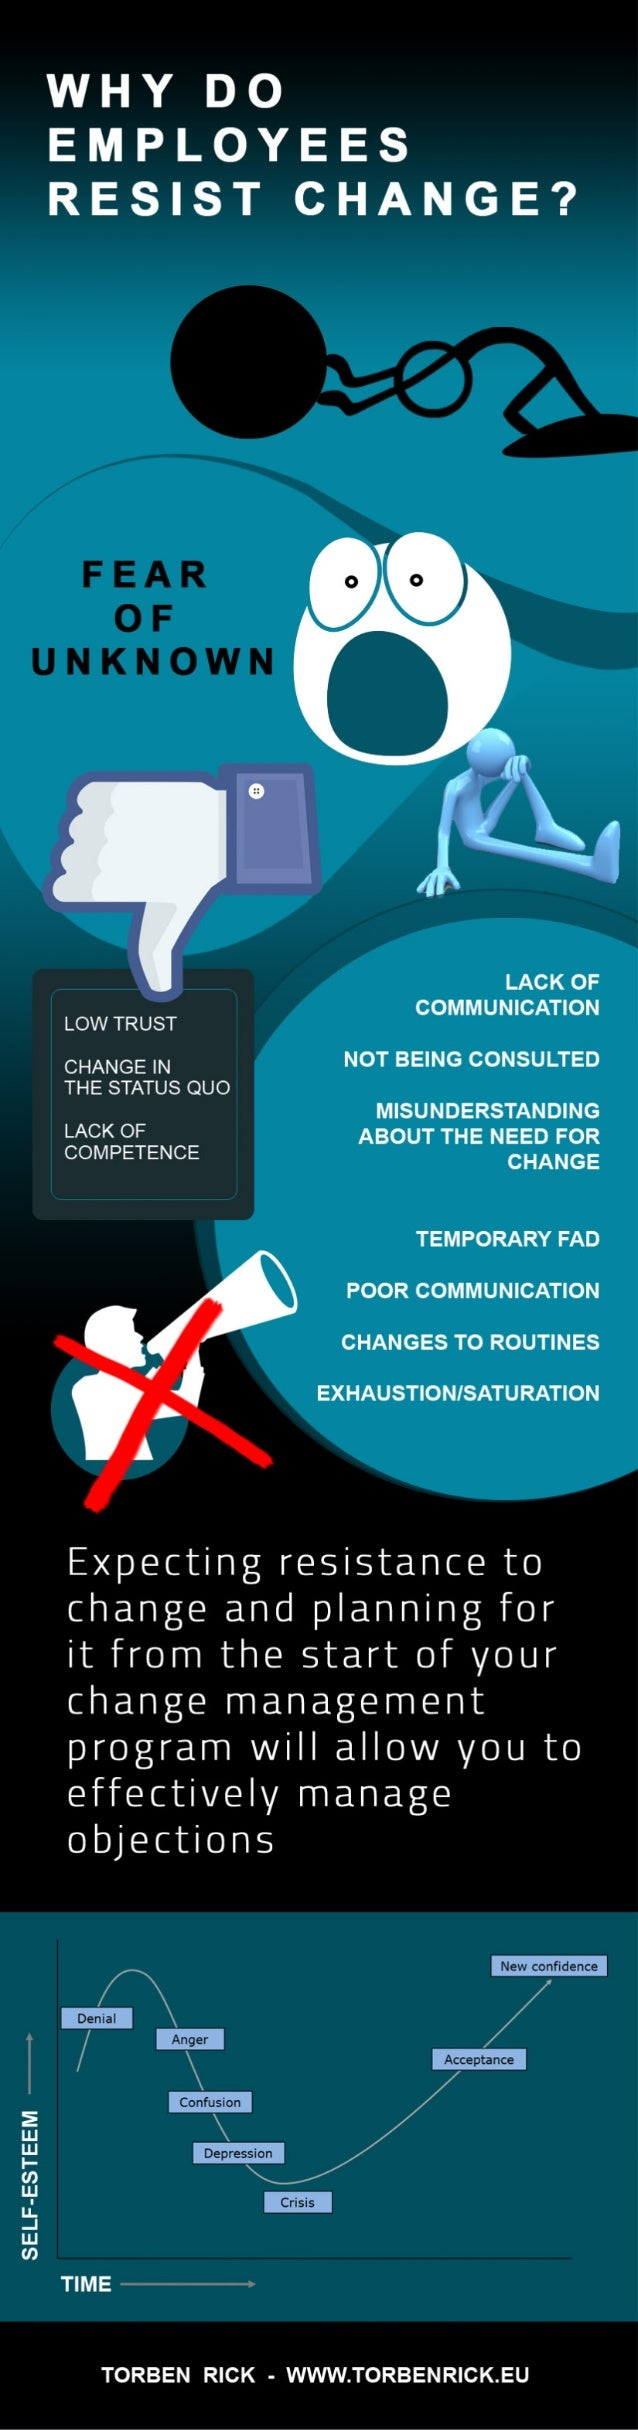 Infographic: Why do employers resist change